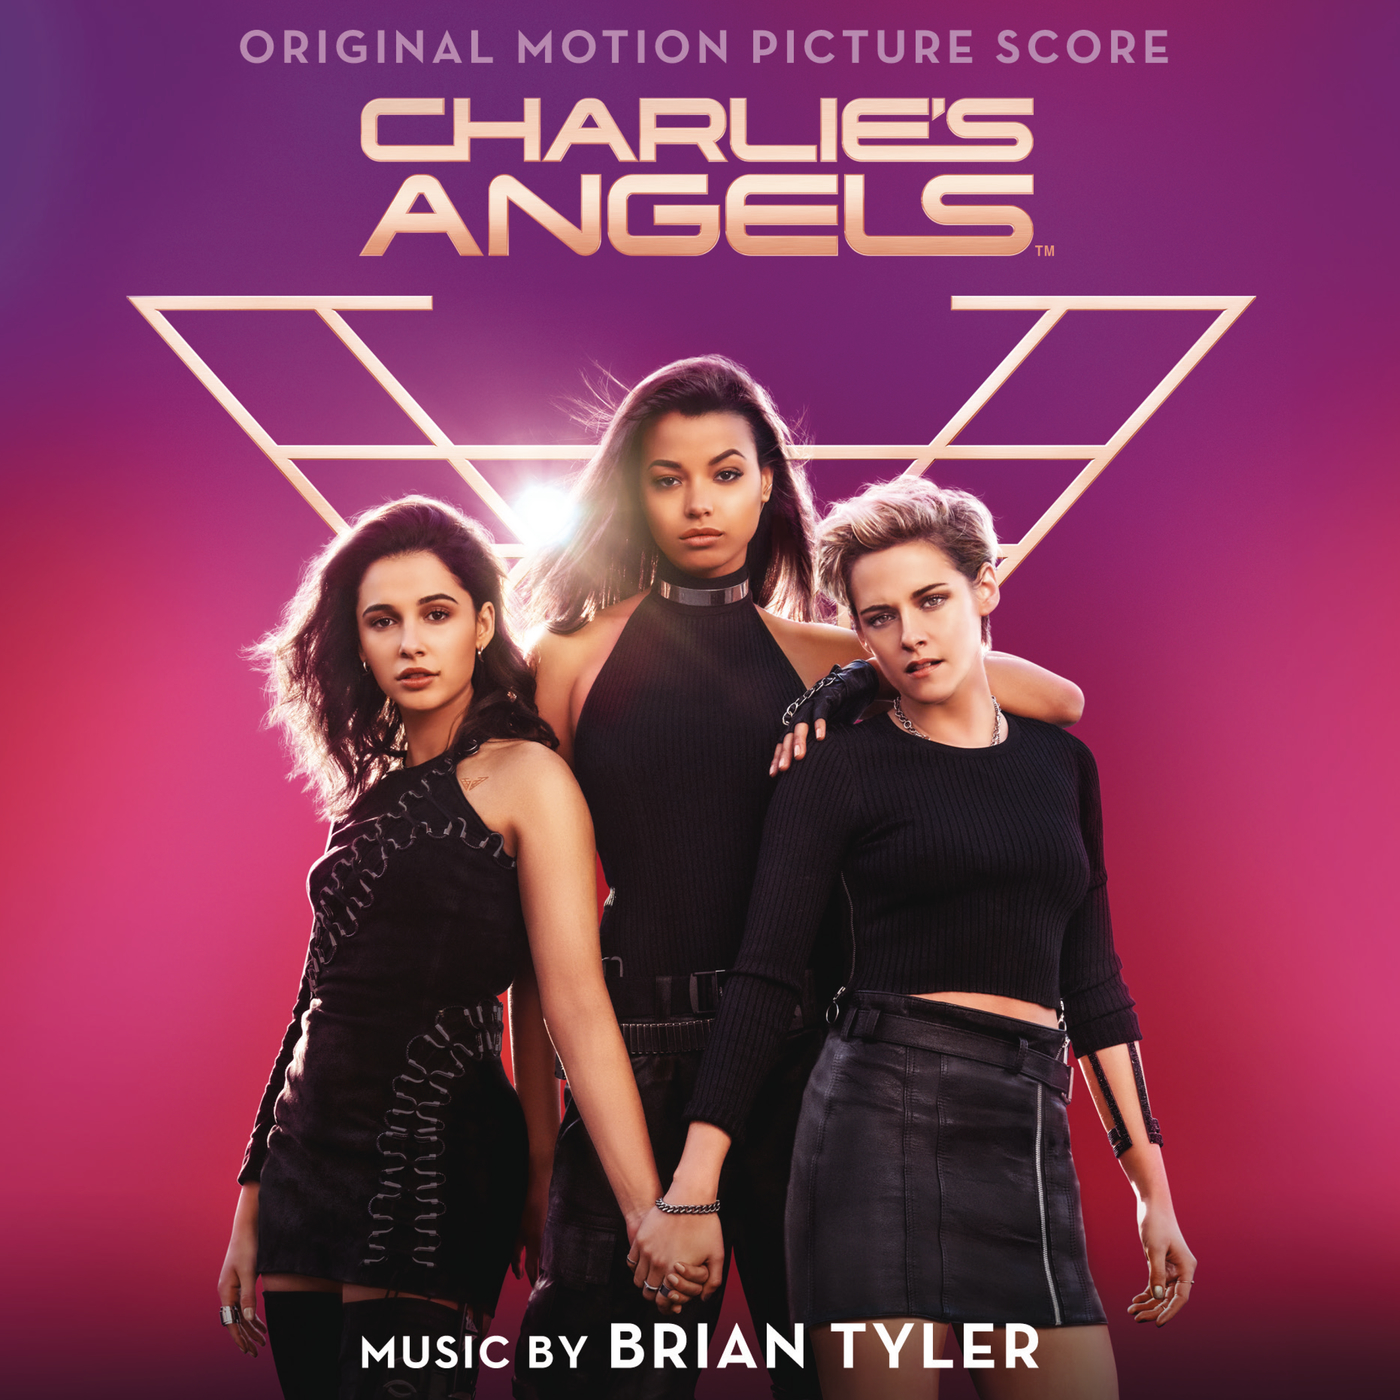 Charlie's Angels (Original Motion Picture Score) - Brian Tyler